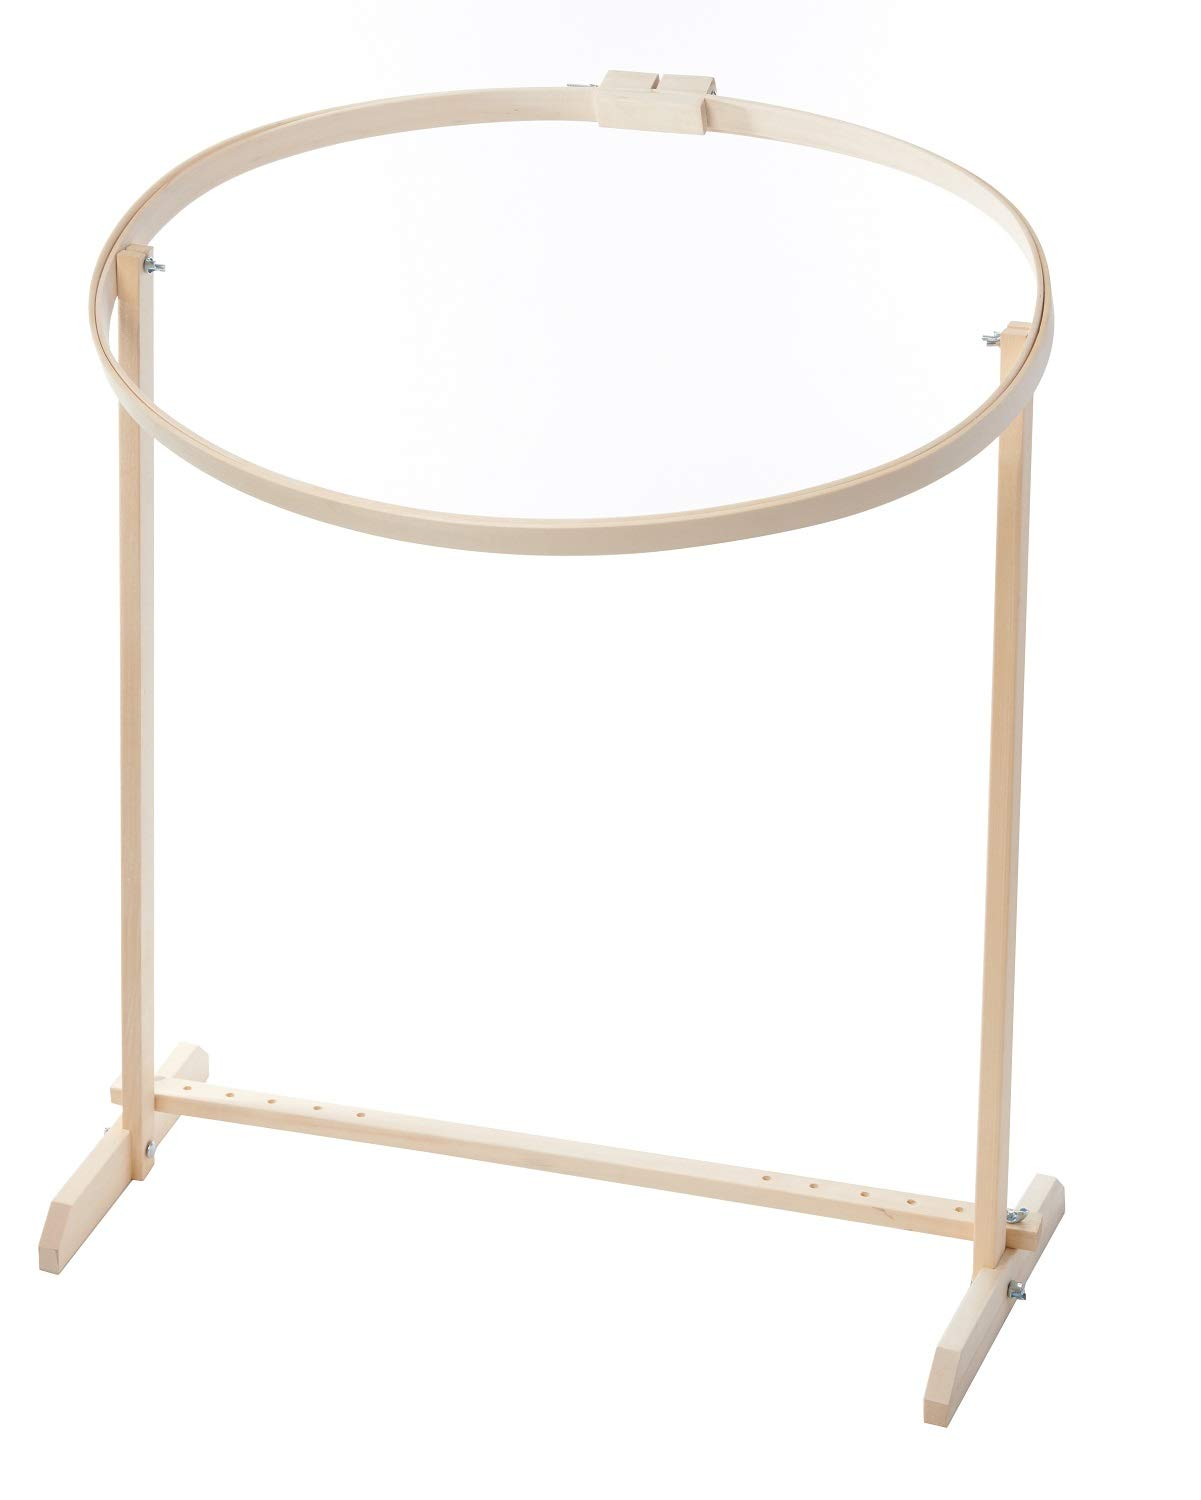 Frank A. Edmunds Oval Hoop with Stand, 5590 by Frank Edmunds & Co.